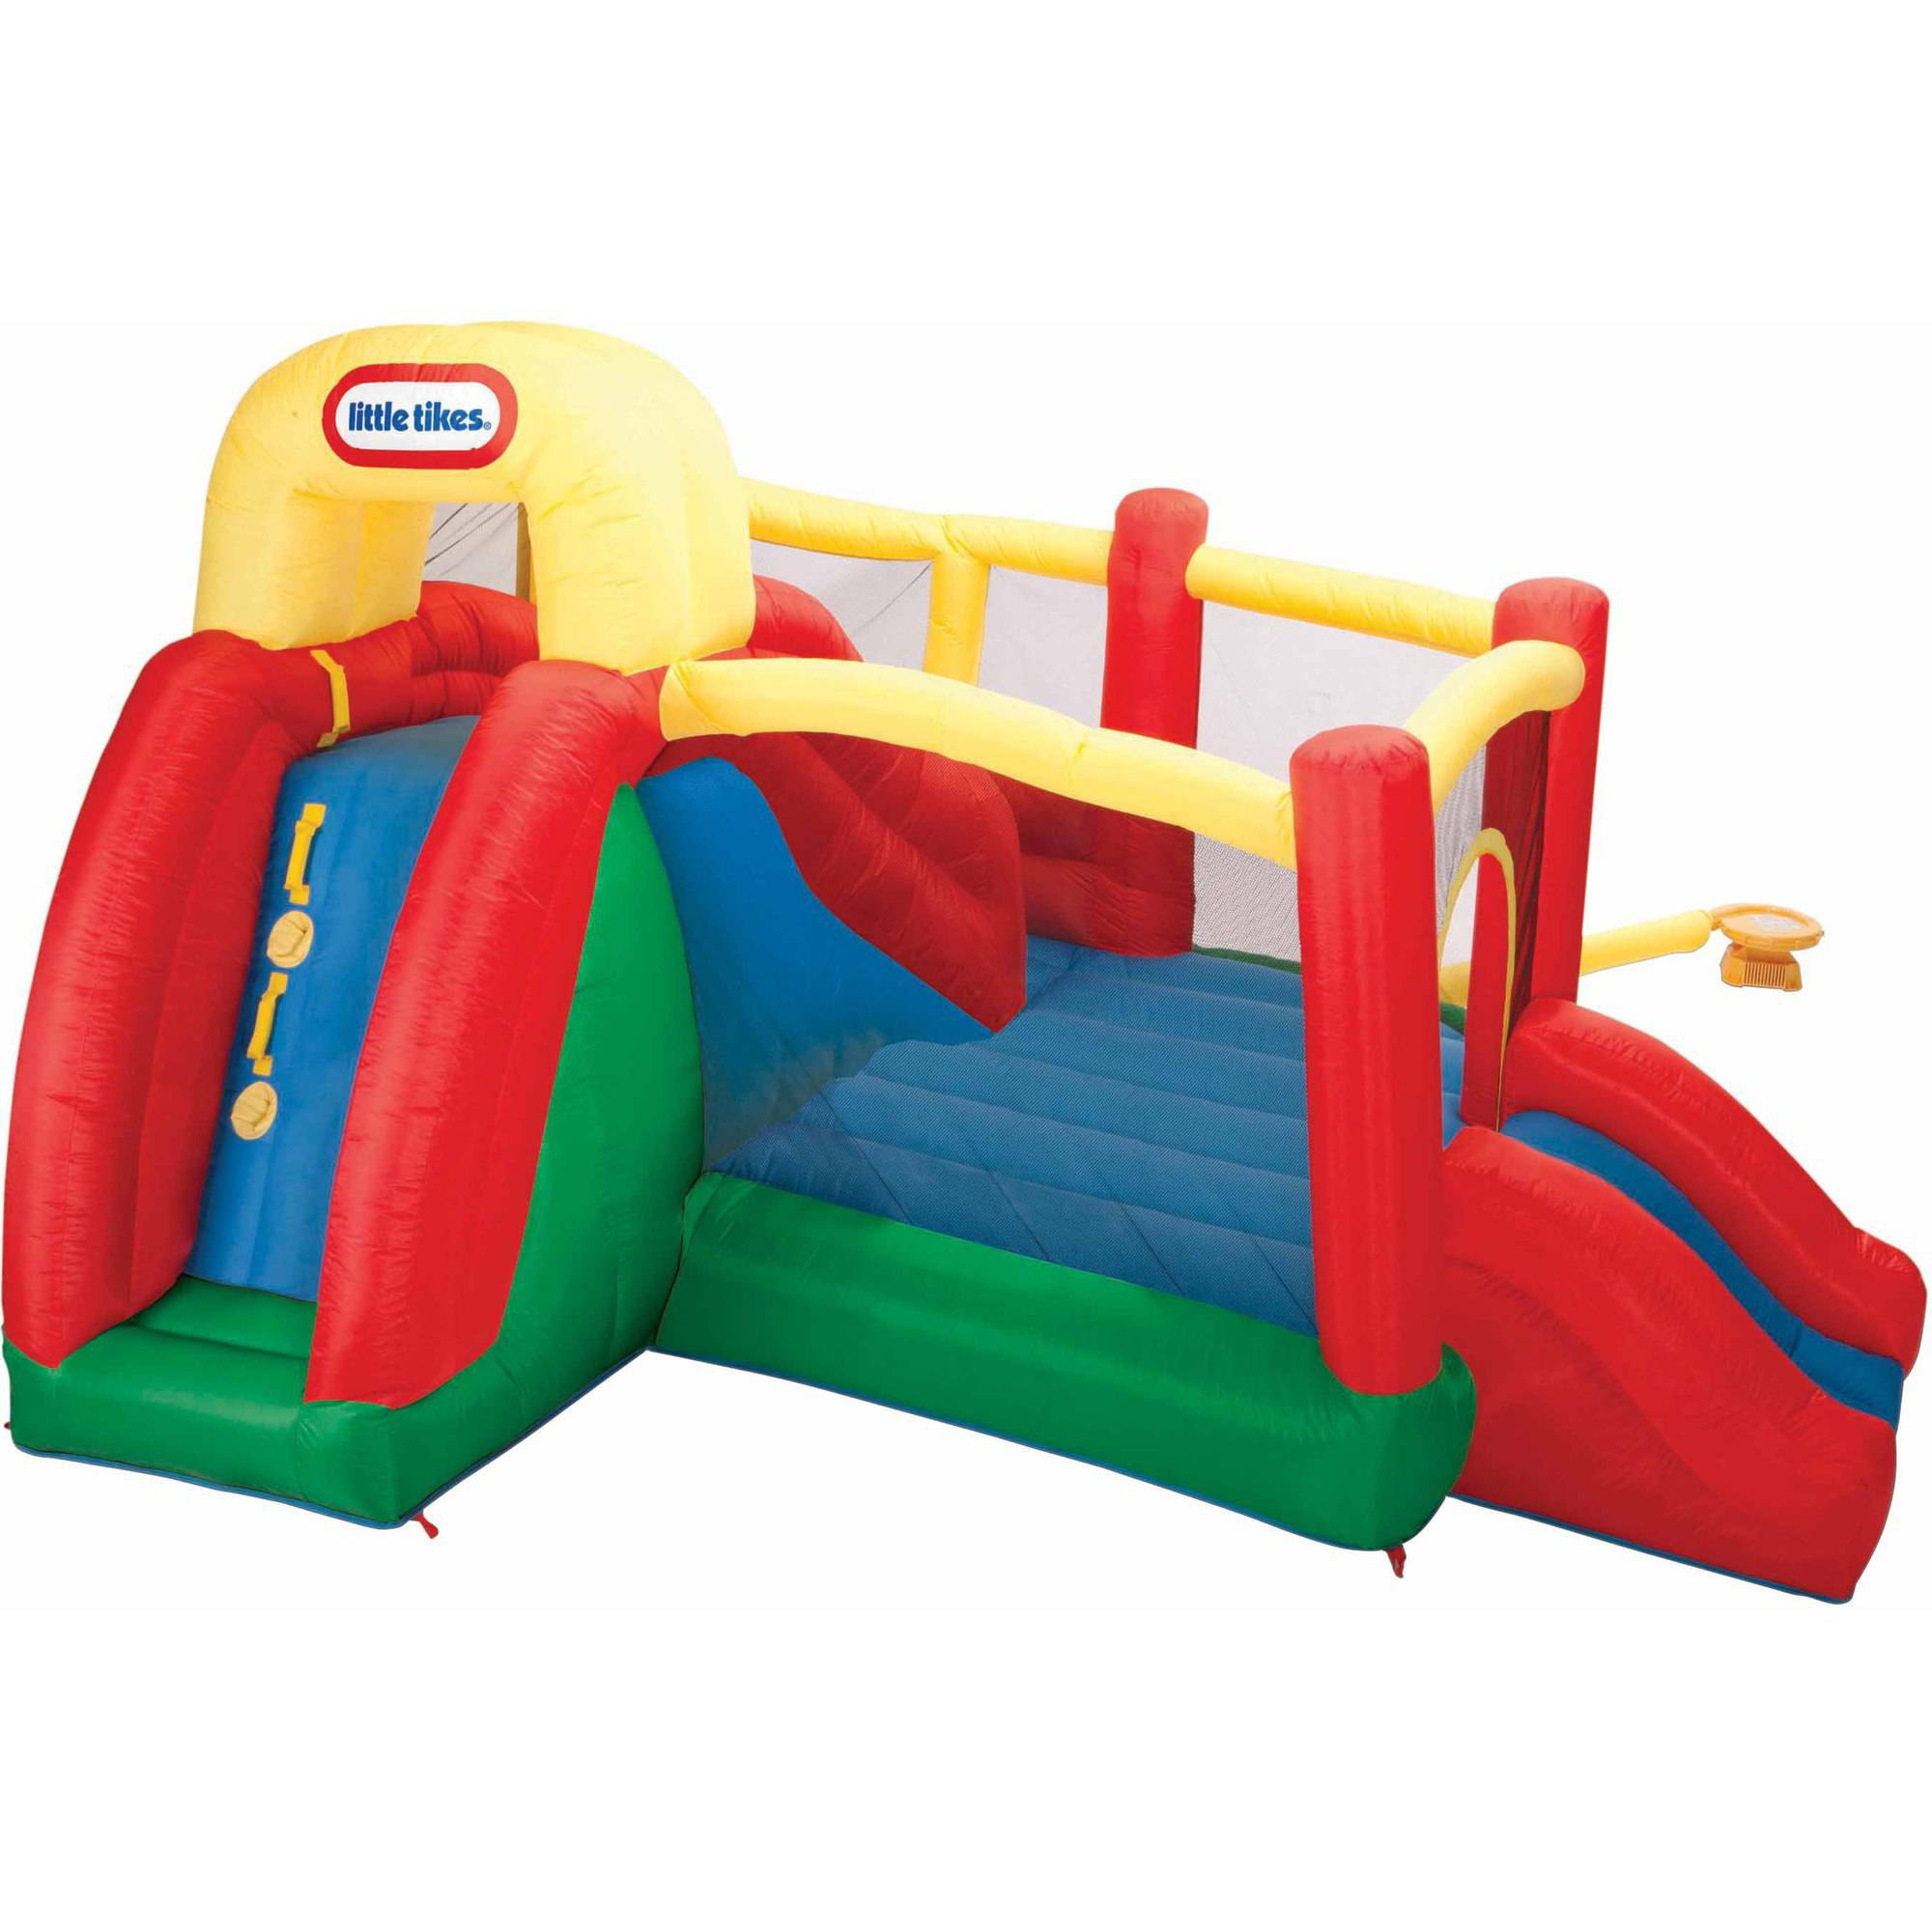 Little Tikes Fun Slide 'n' Bounce Bouncer